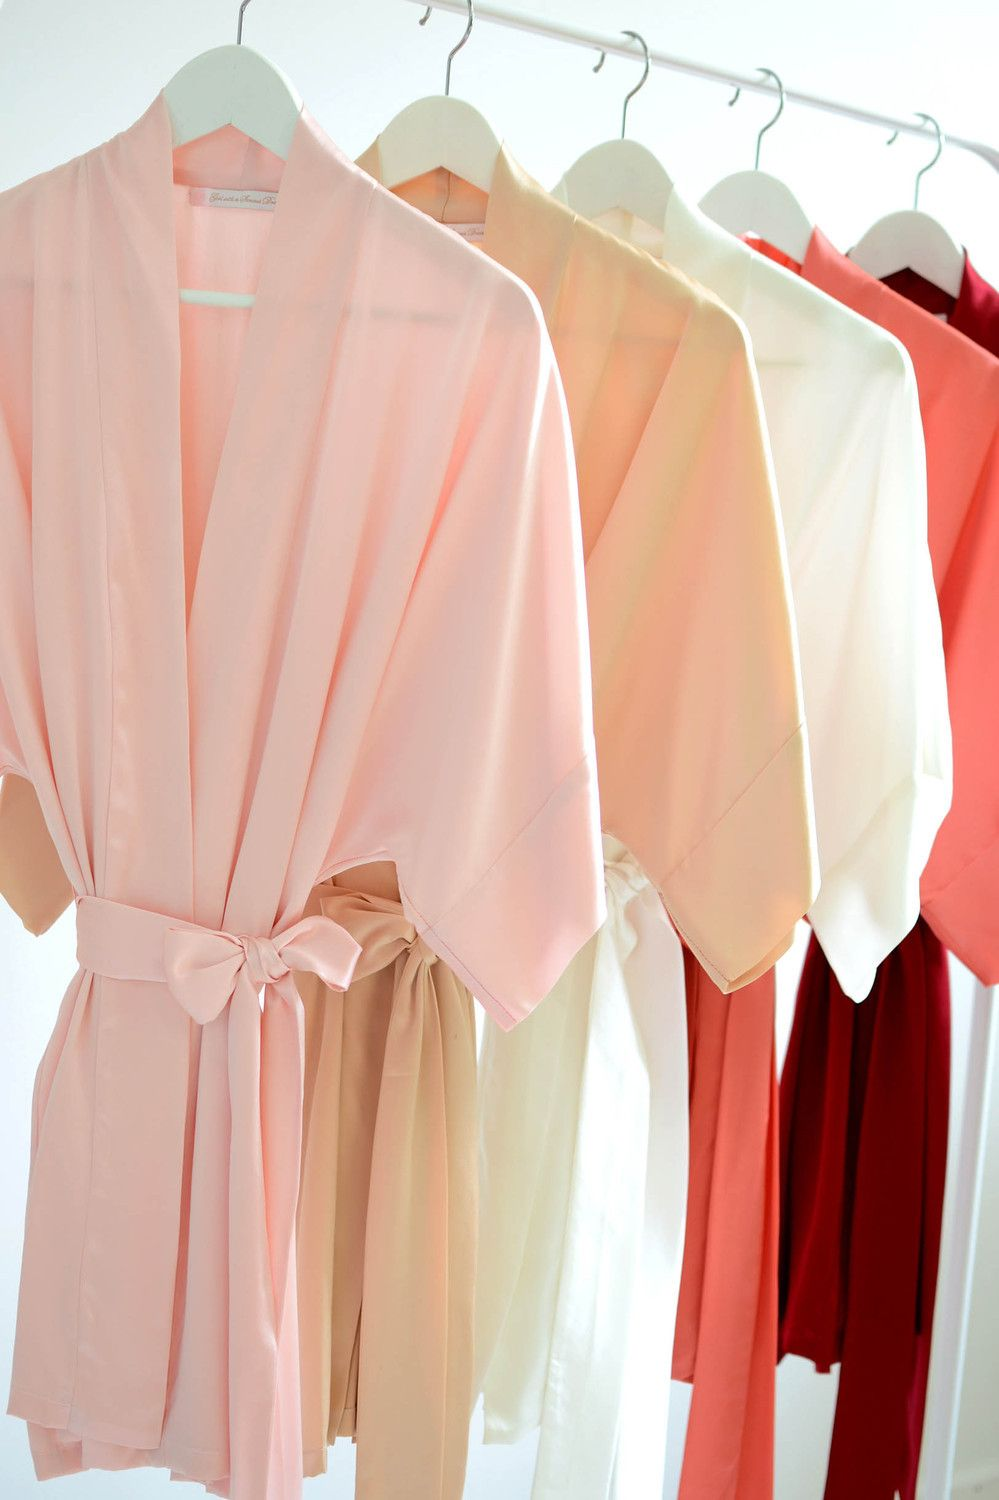 Samantha bridal silk kimono robe bridesmaids robes in Strawberries ...